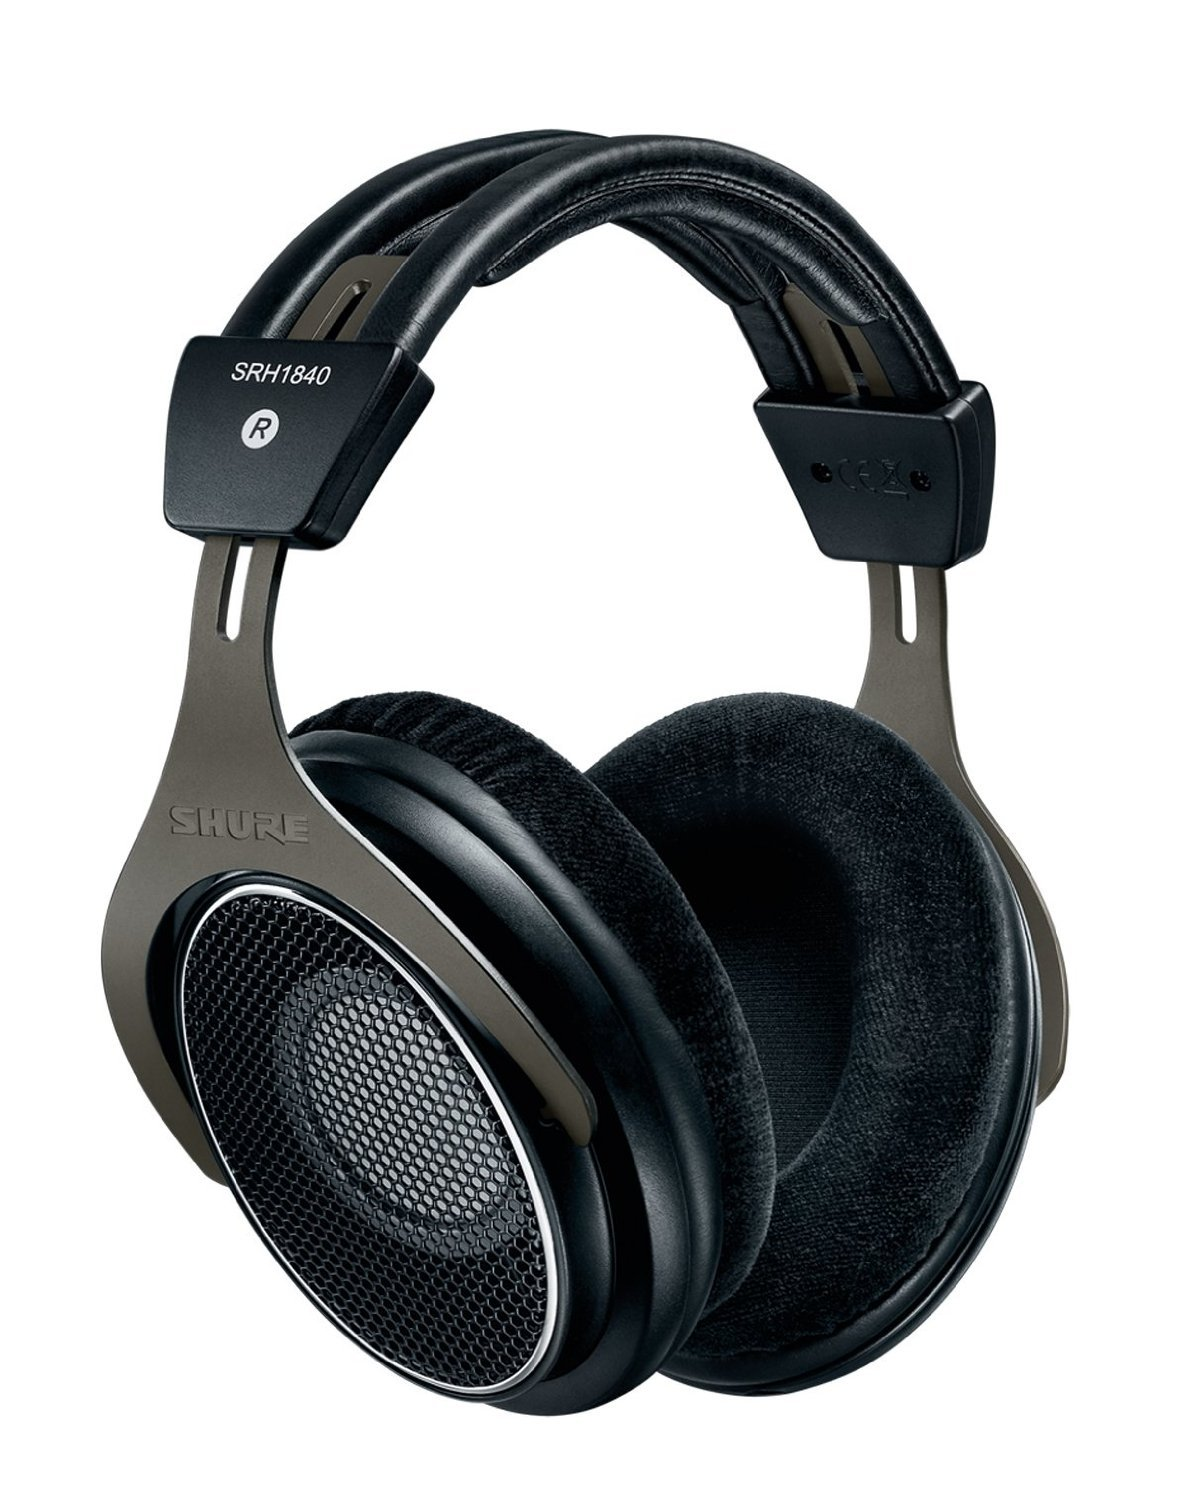 Shure SRH1840 Professional Open Back Headphones Black